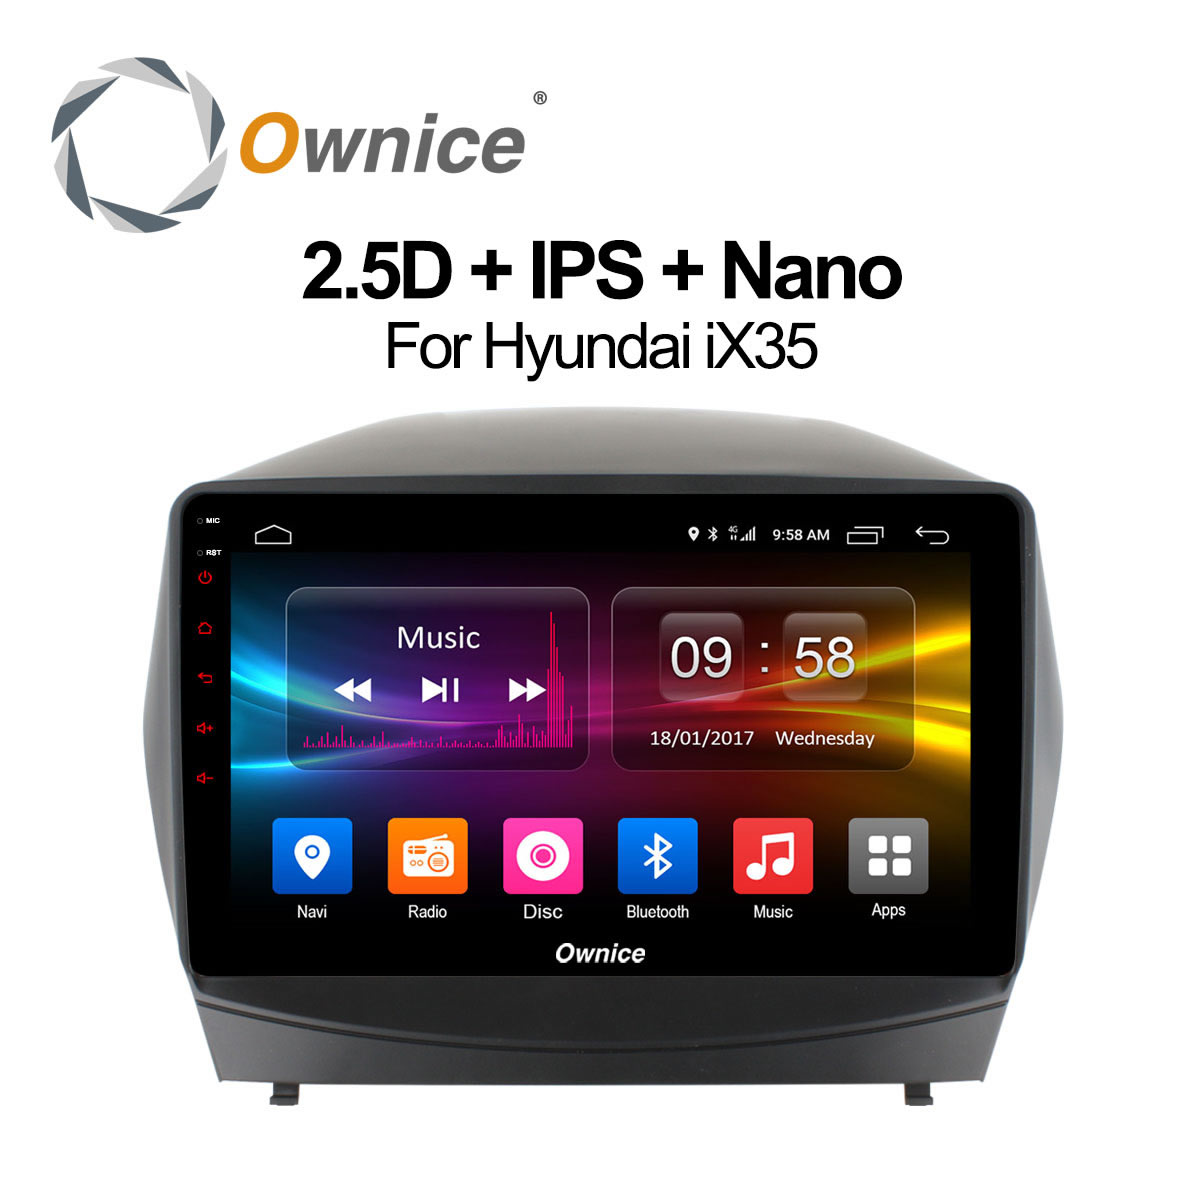 ownice c500 octa 8 core android 6 0 car radio dvd player. Black Bedroom Furniture Sets. Home Design Ideas